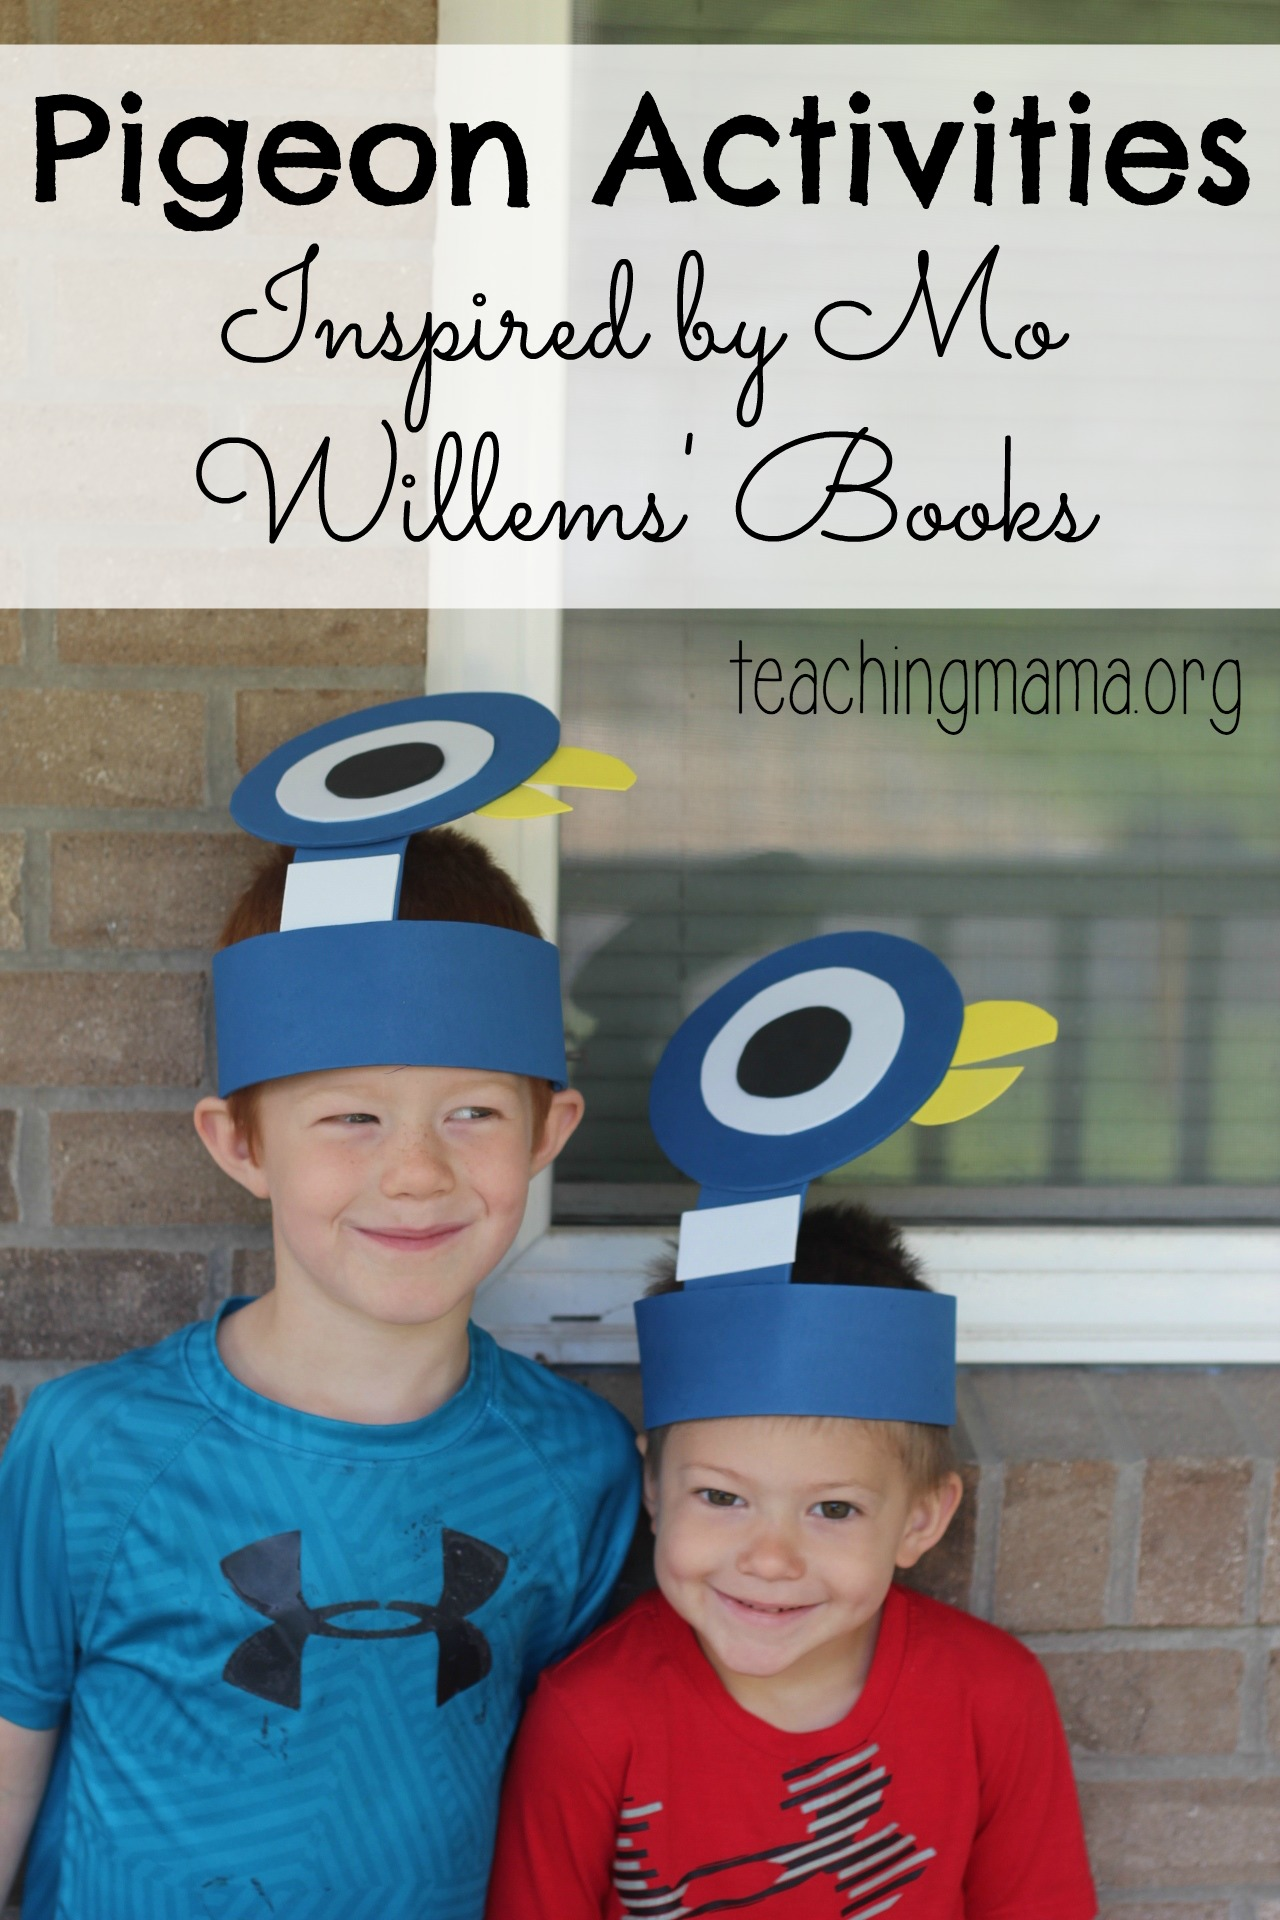 Pigeon Activities by Mo Willems